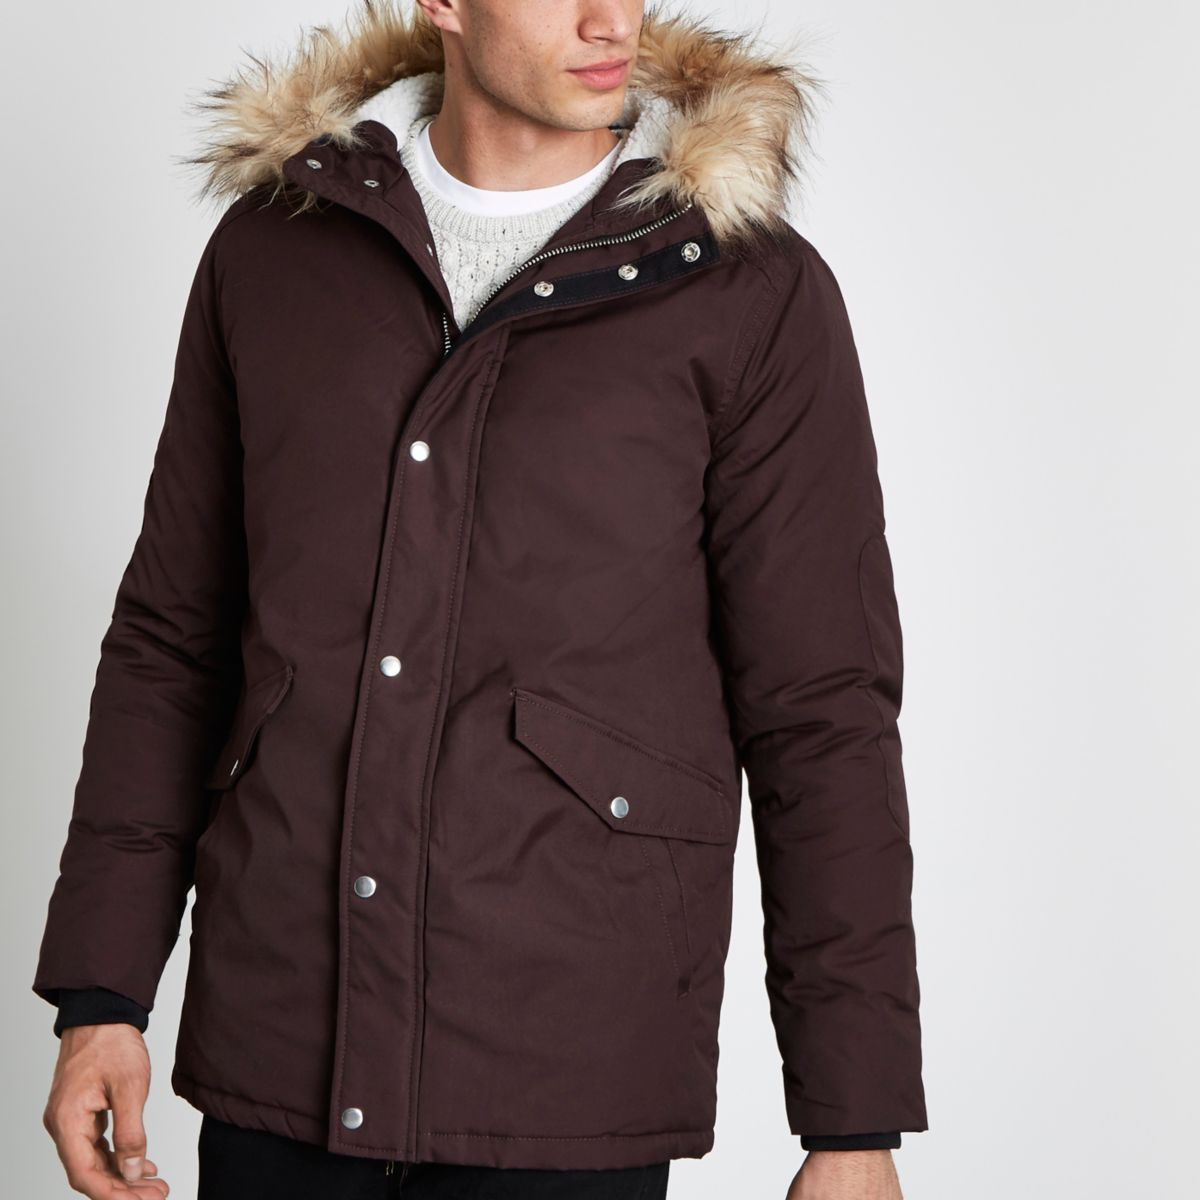 Burgundy faux fur trimmed hooded parka - Coats & Jackets - Sale - men